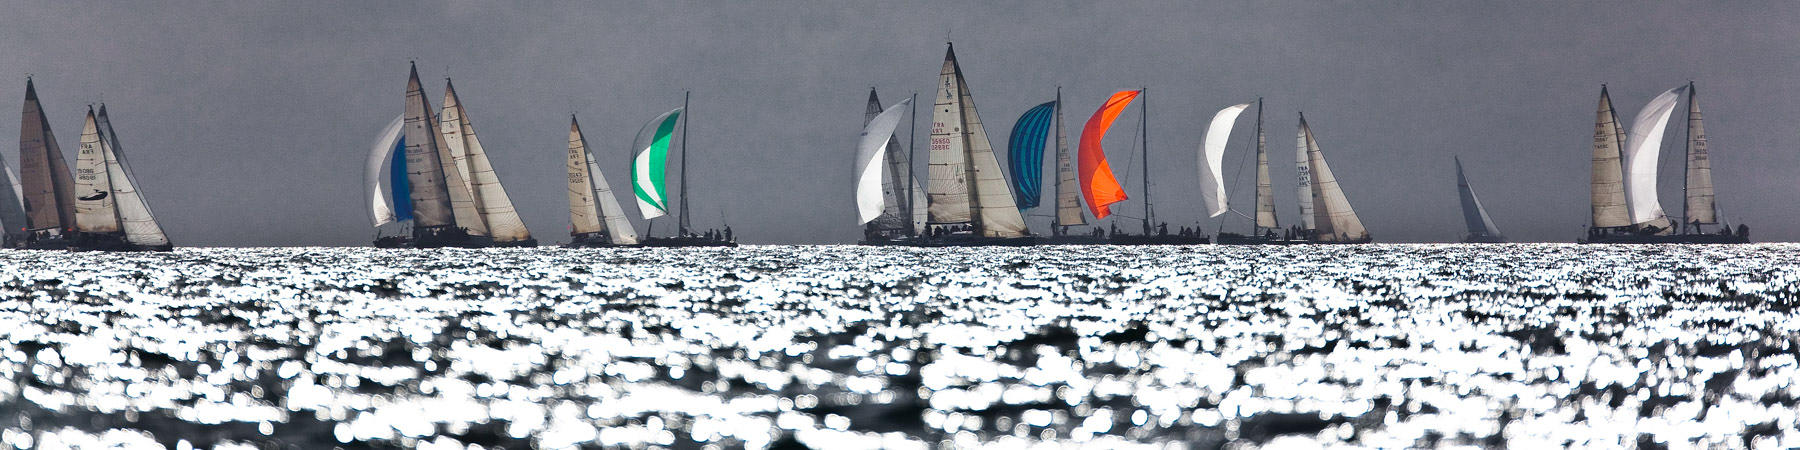 Spi Ouest France 2012 - Photo Pêcheur d'Images